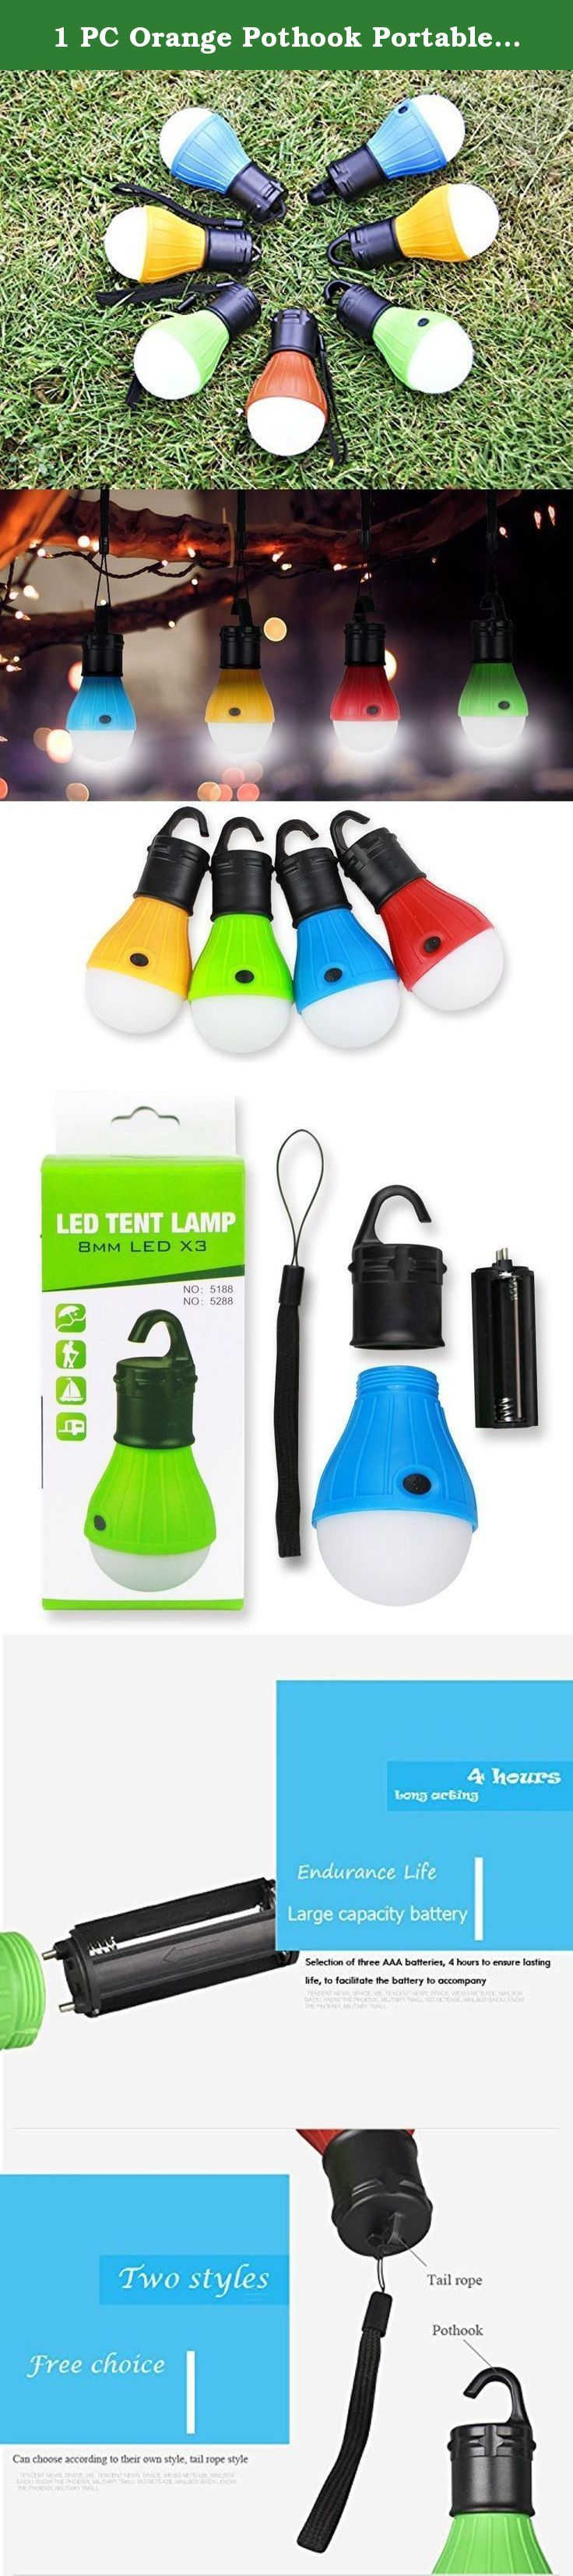 1 PC Orange Pothook Portable Hanging Hook LED Camping Lamp Tent Light Torch Flashlight Hanging Flat LED Light 3 Mode Adjustable Lantern AAA Battery ABS Plastic. Product Name: multi function camping lamp Product size: 75mmX128mm Product weight: 39G Product material: ABS environmental protection plastic Product source: 3 F8 lamp Life span: 50000 hours Color: green, orange, blue, red Use battery: 3 AAA batteries Switch gear: three light: light / light / semi flash Light: 20x3=60 lumens…